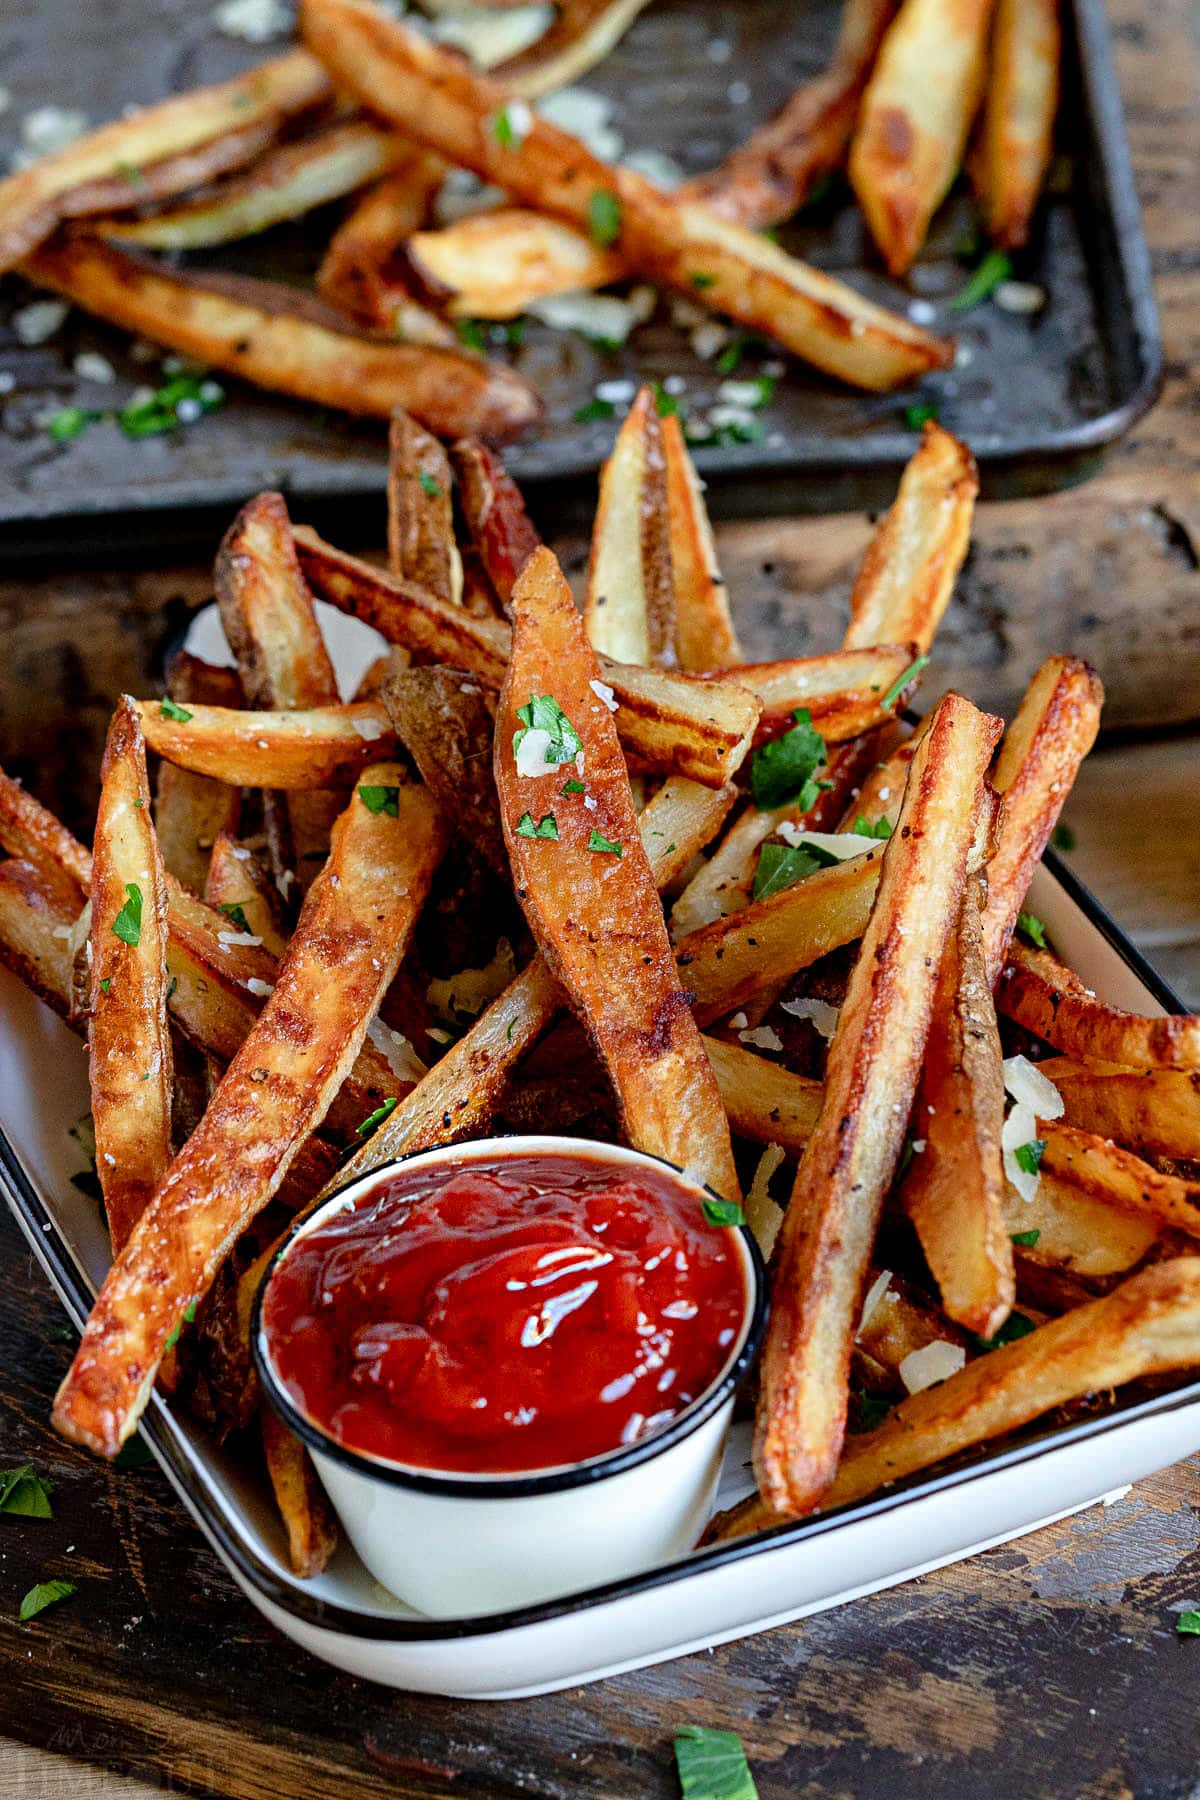 perfectly crisp oven fries piled high with Parmesan cheese and parsley. Served with ketchup on the side.